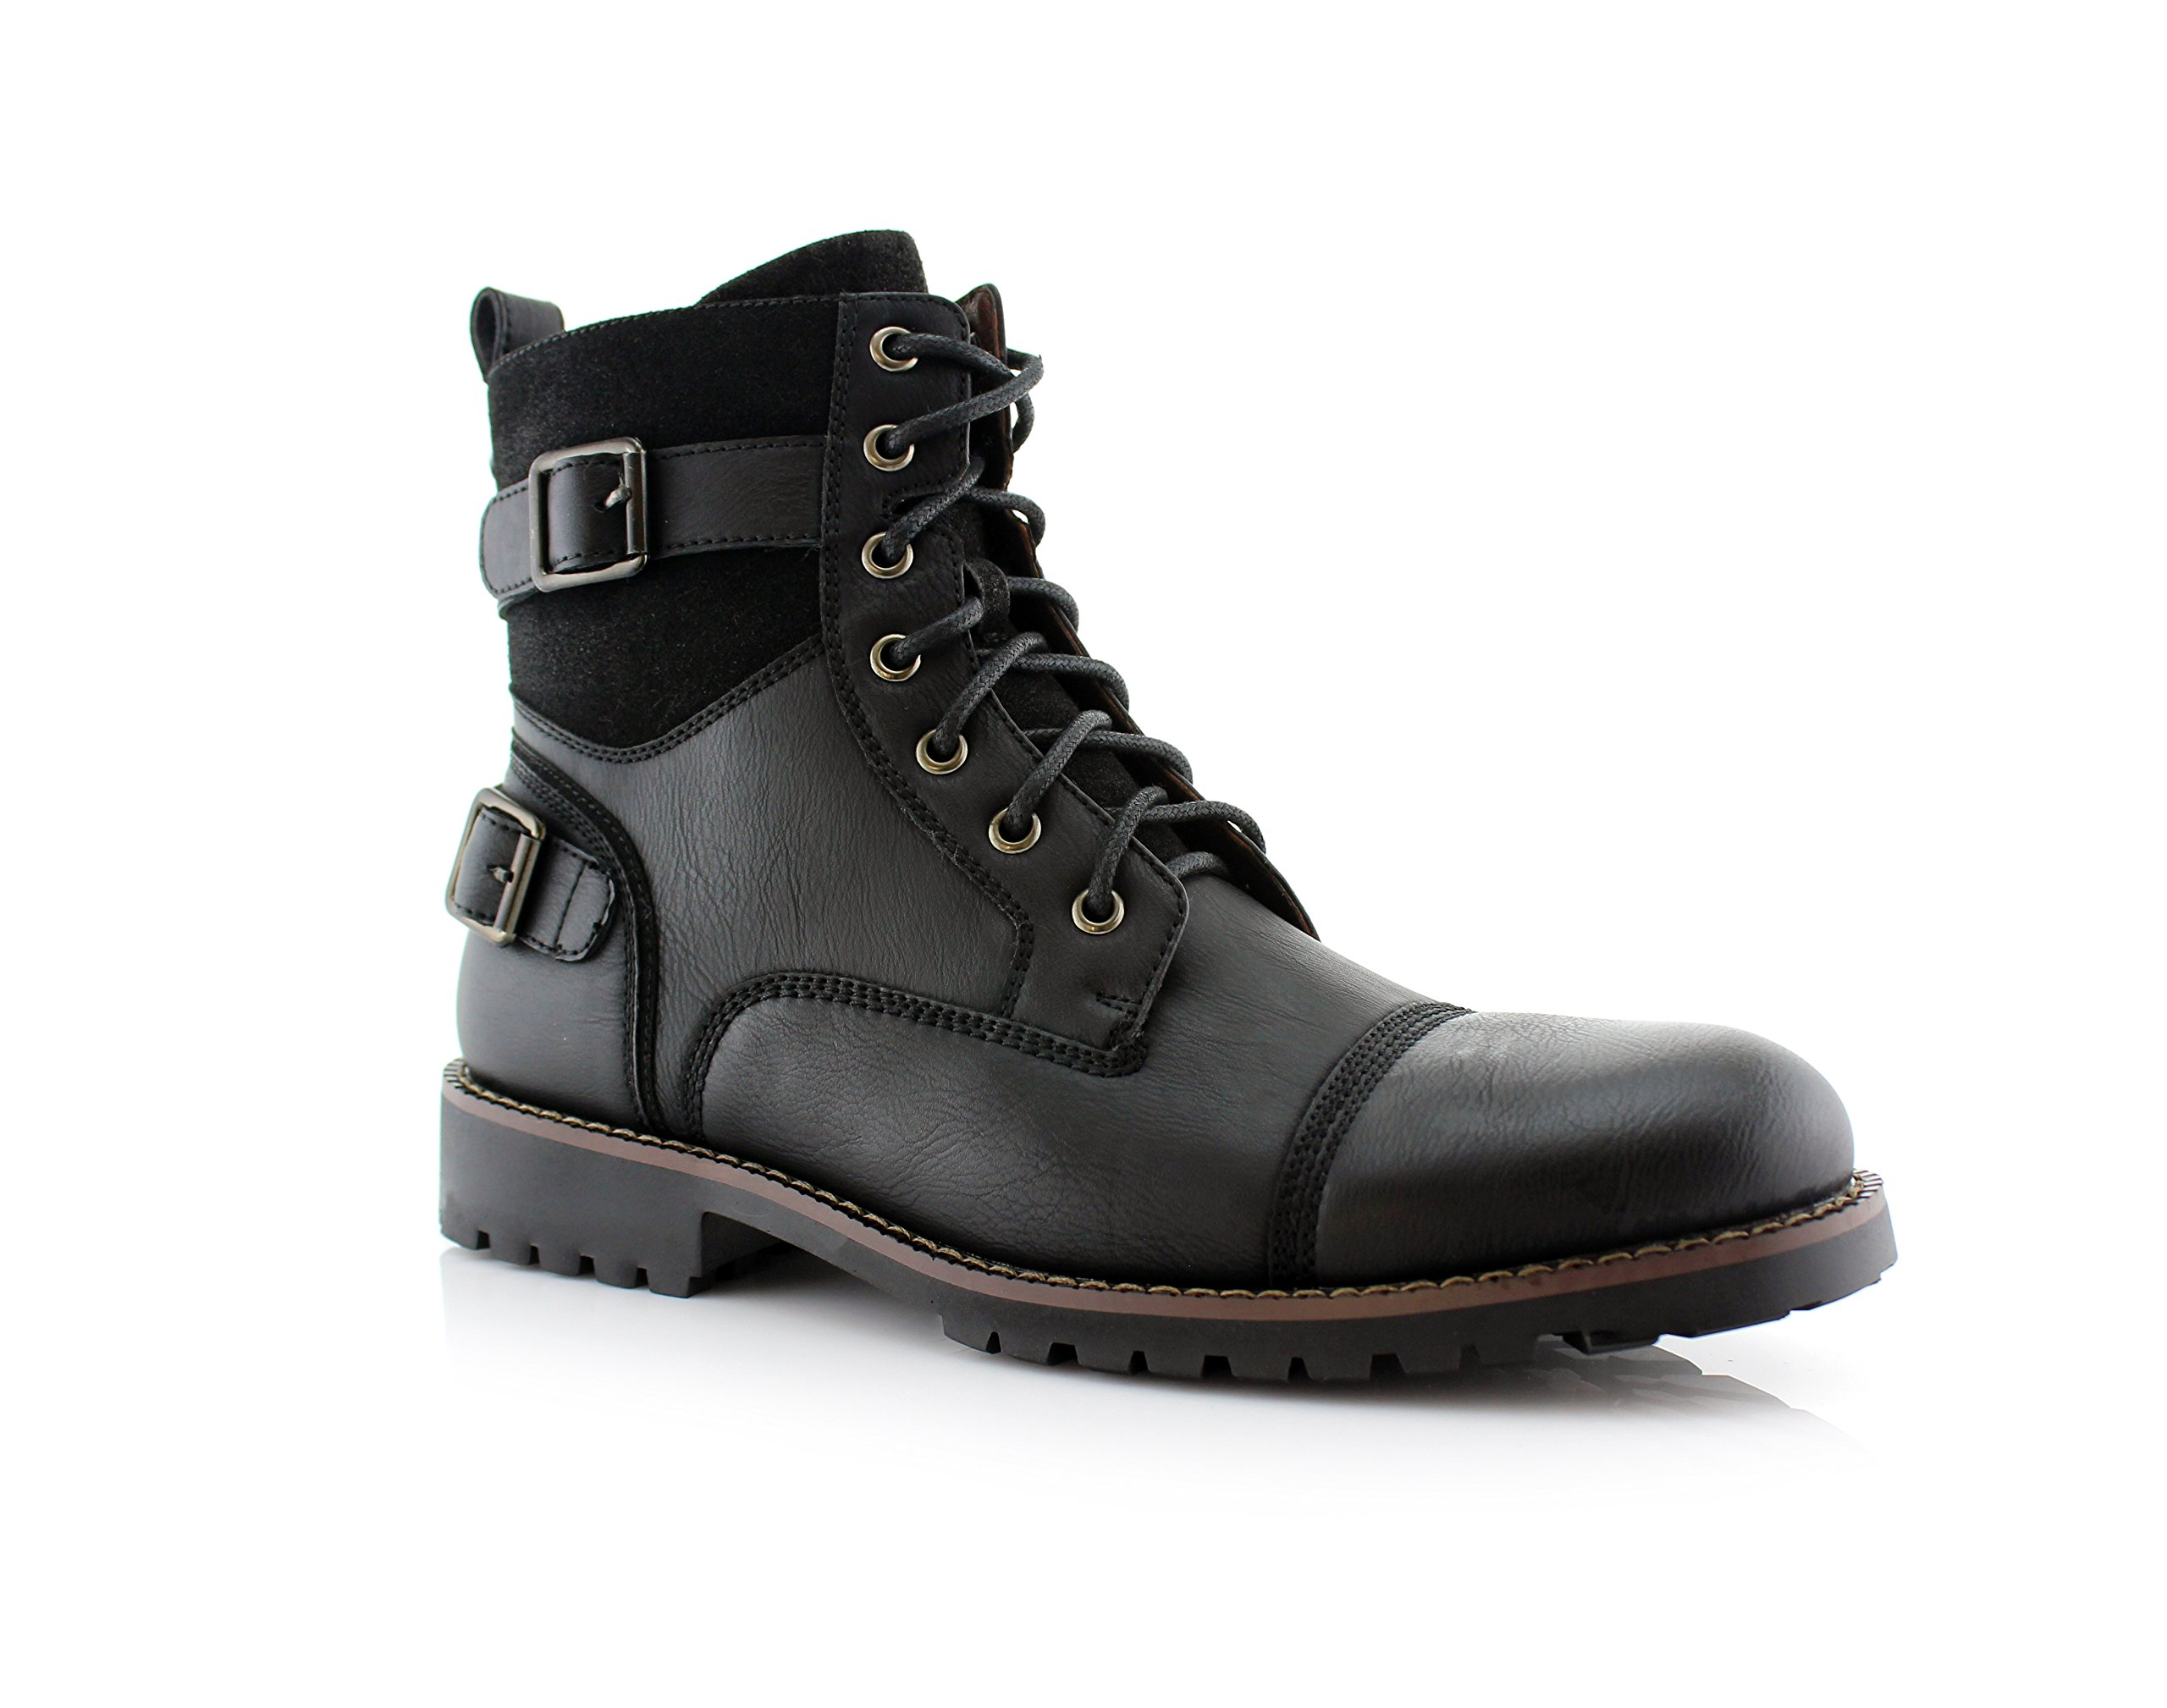 Polar Fox Patrick MPX808583 Mens Casual Cap Toe Buckle High-Top Motorcycle Work Biker Combat Boots – Black, Size 12